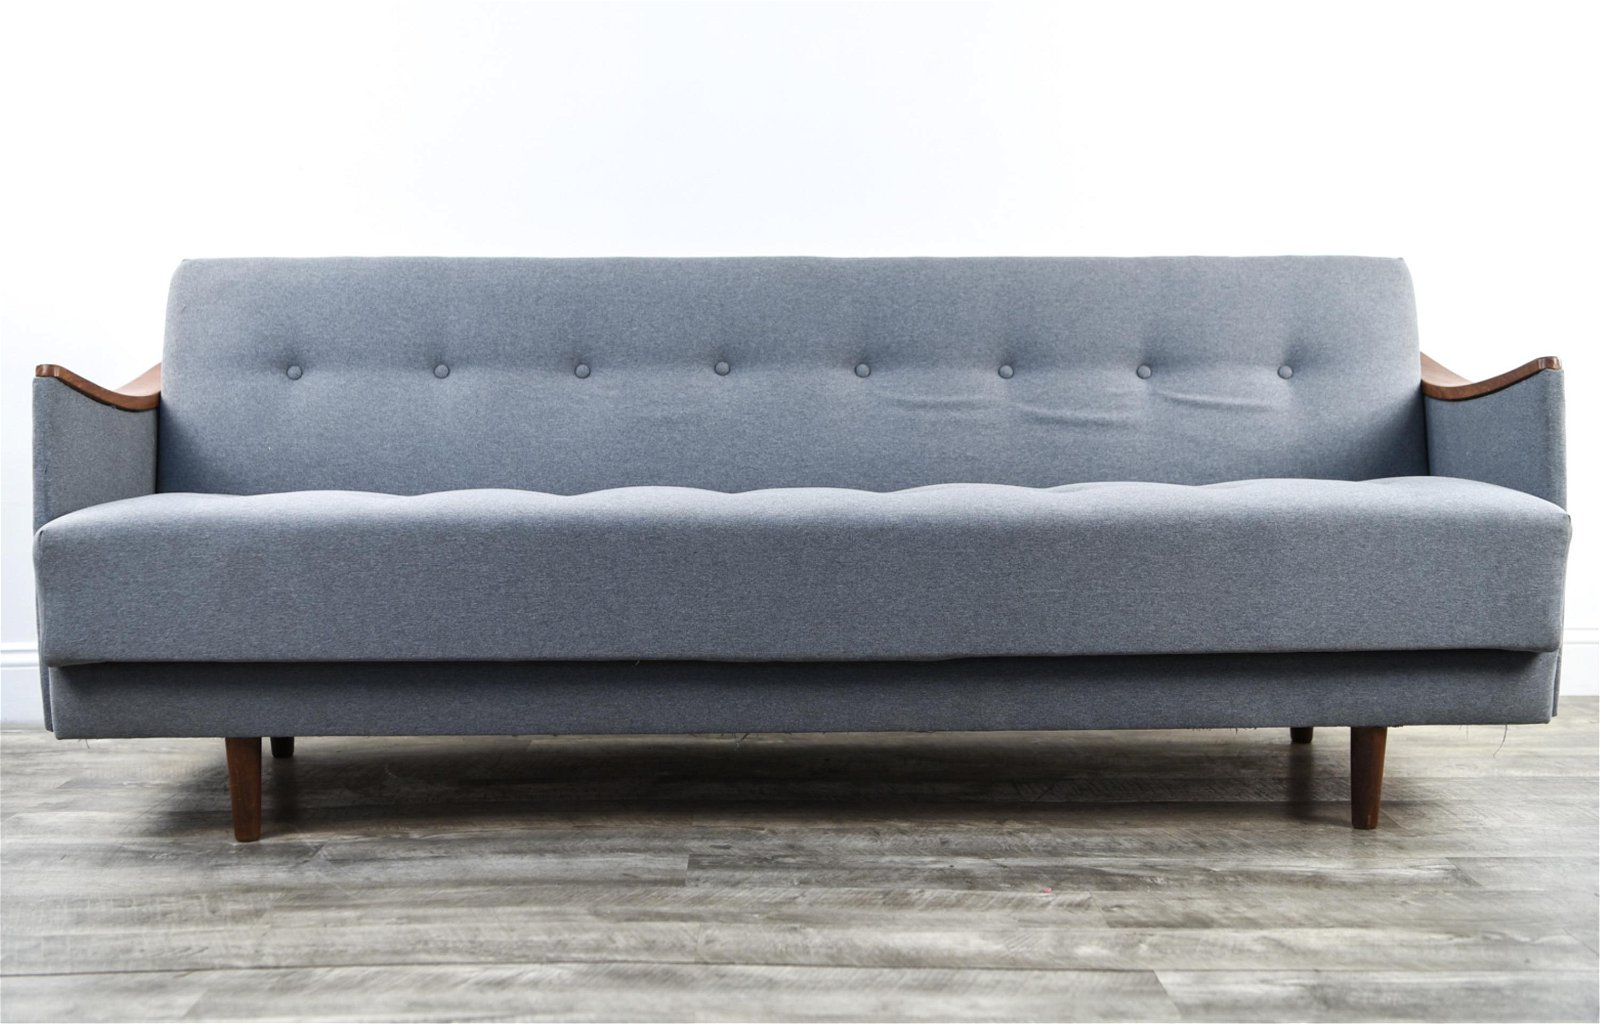 MID-CENTURY LICO SYSTEM DAYBED SOFA